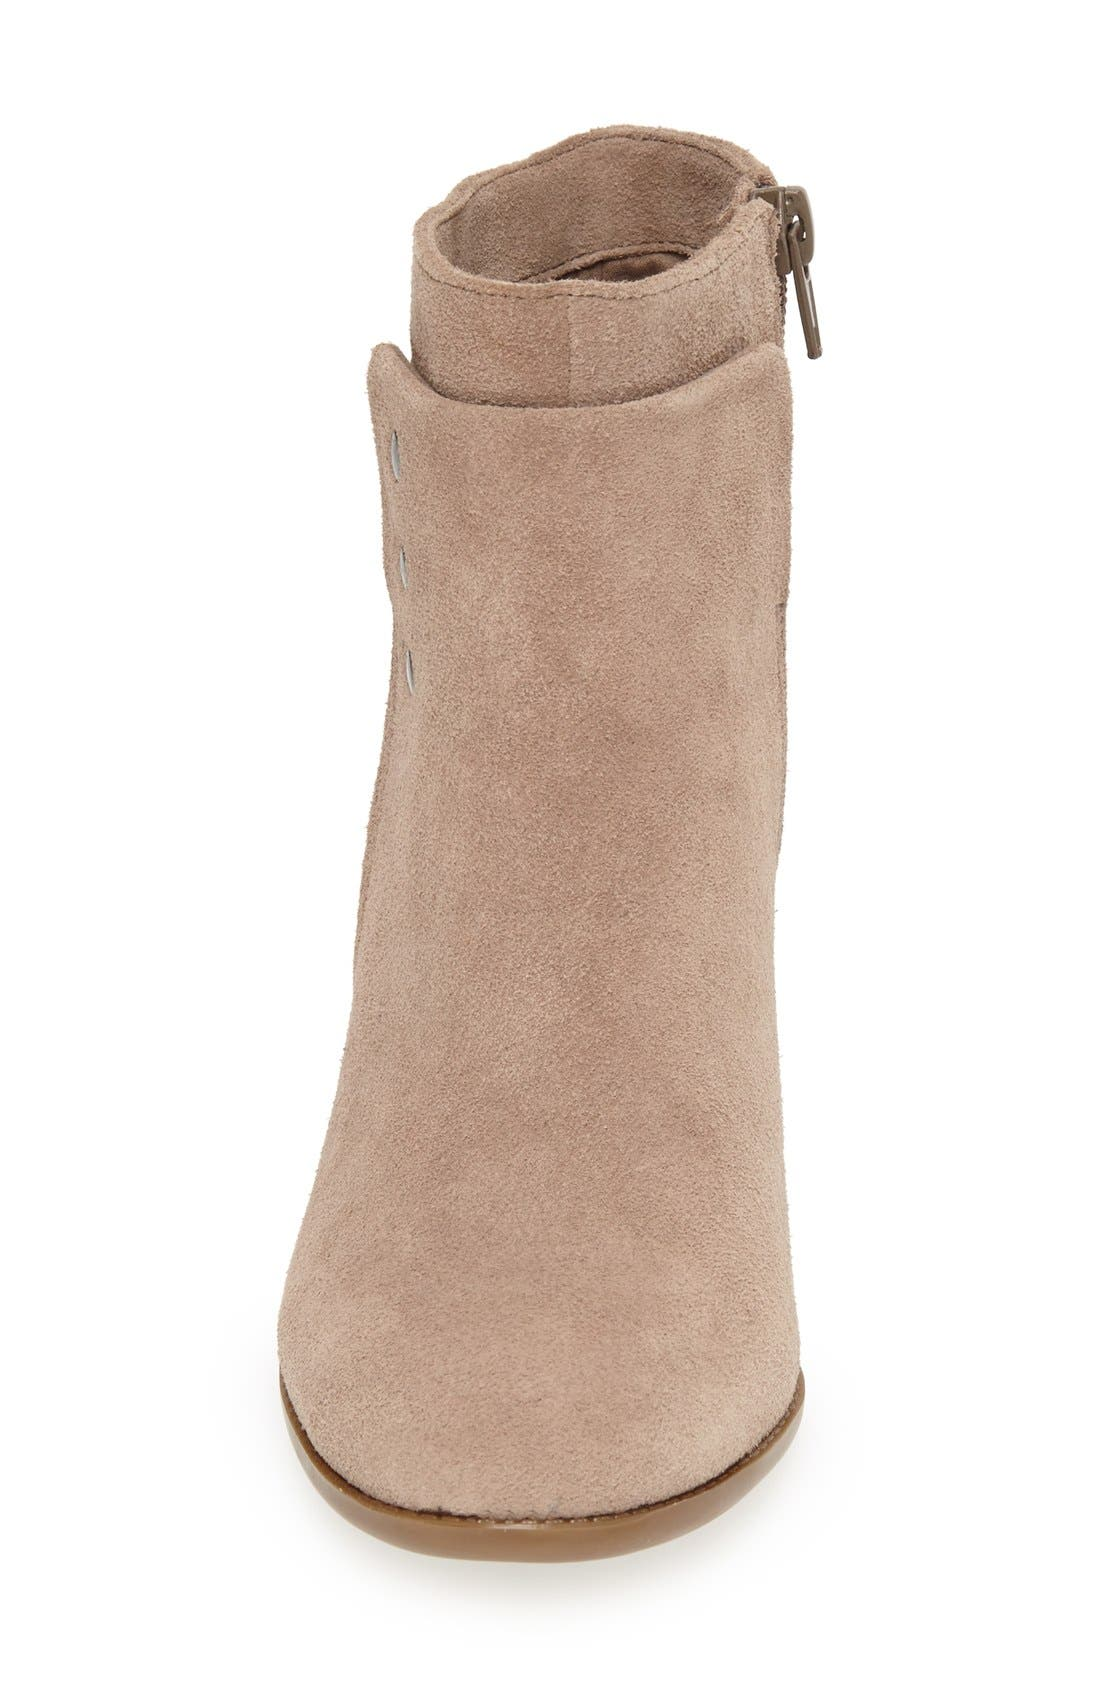 Alternate Image 3  - Sole Society 'Erlina' Leather Ankle Bootie (Women)